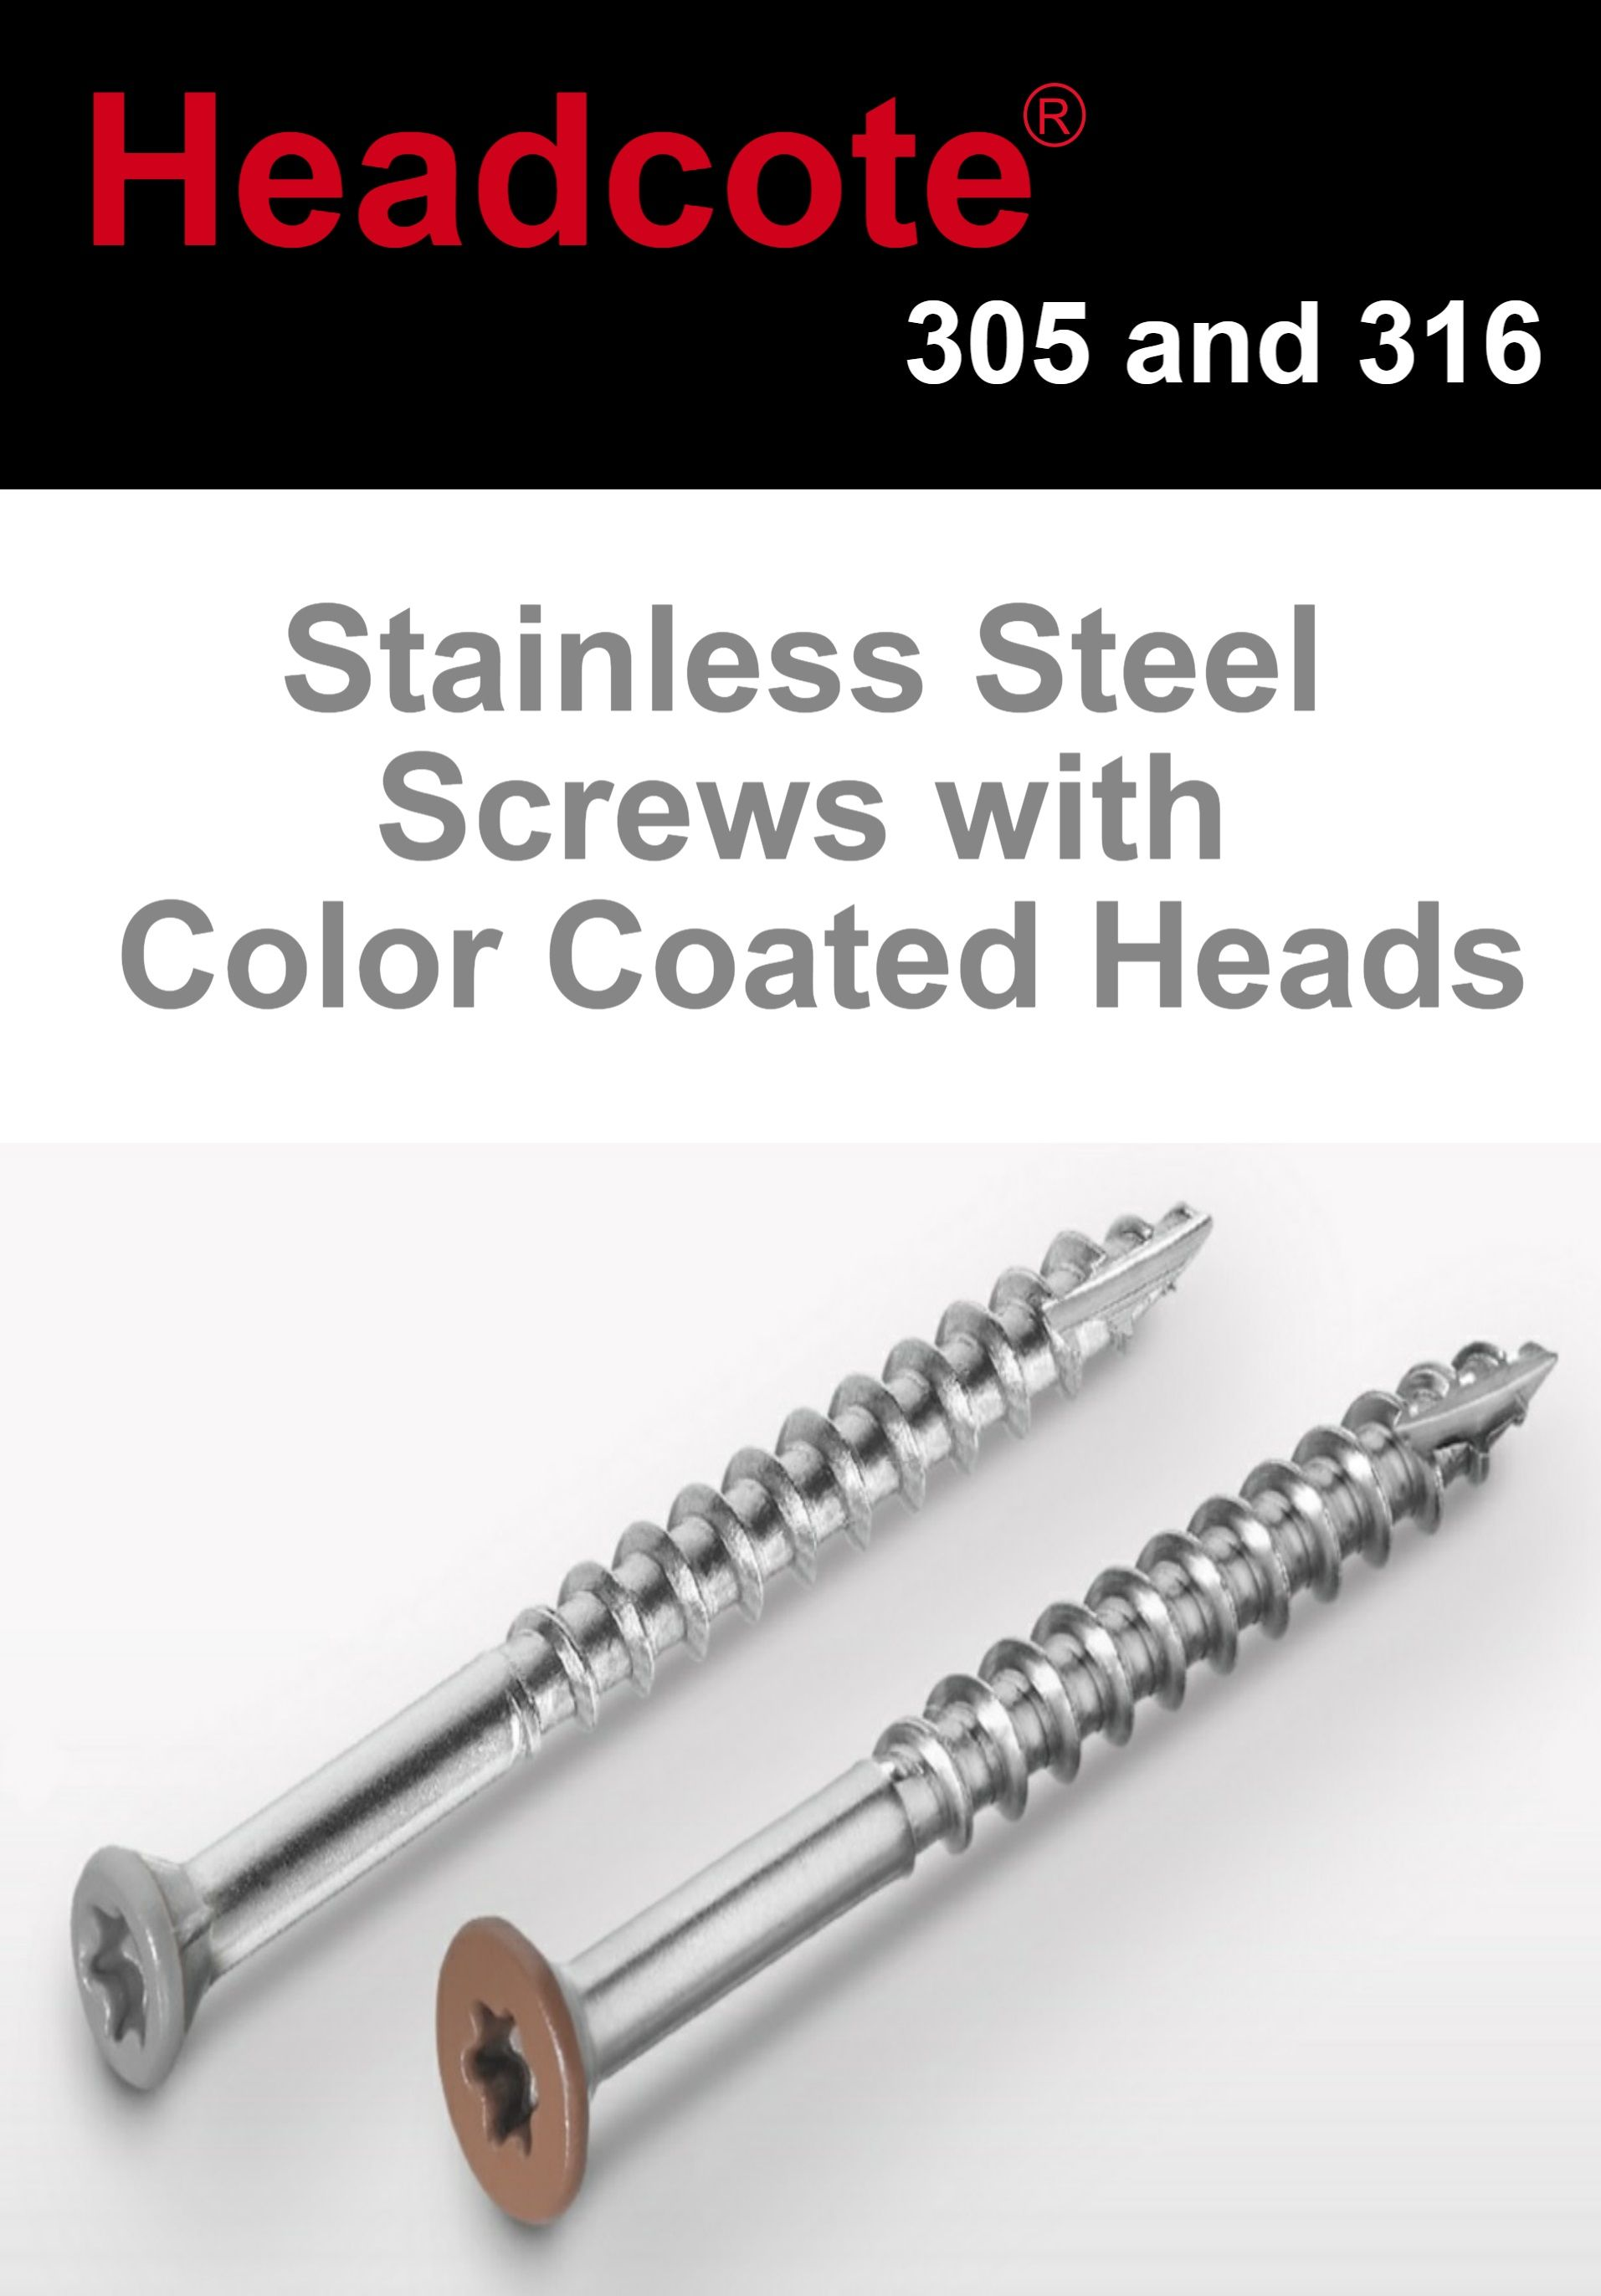 Decking Screws With Color Match Painted Heads Headcote In 305 And 316 Stainless Steel Available A Decking Screws Hidden Deck Fasteners Stainless Steel Screws